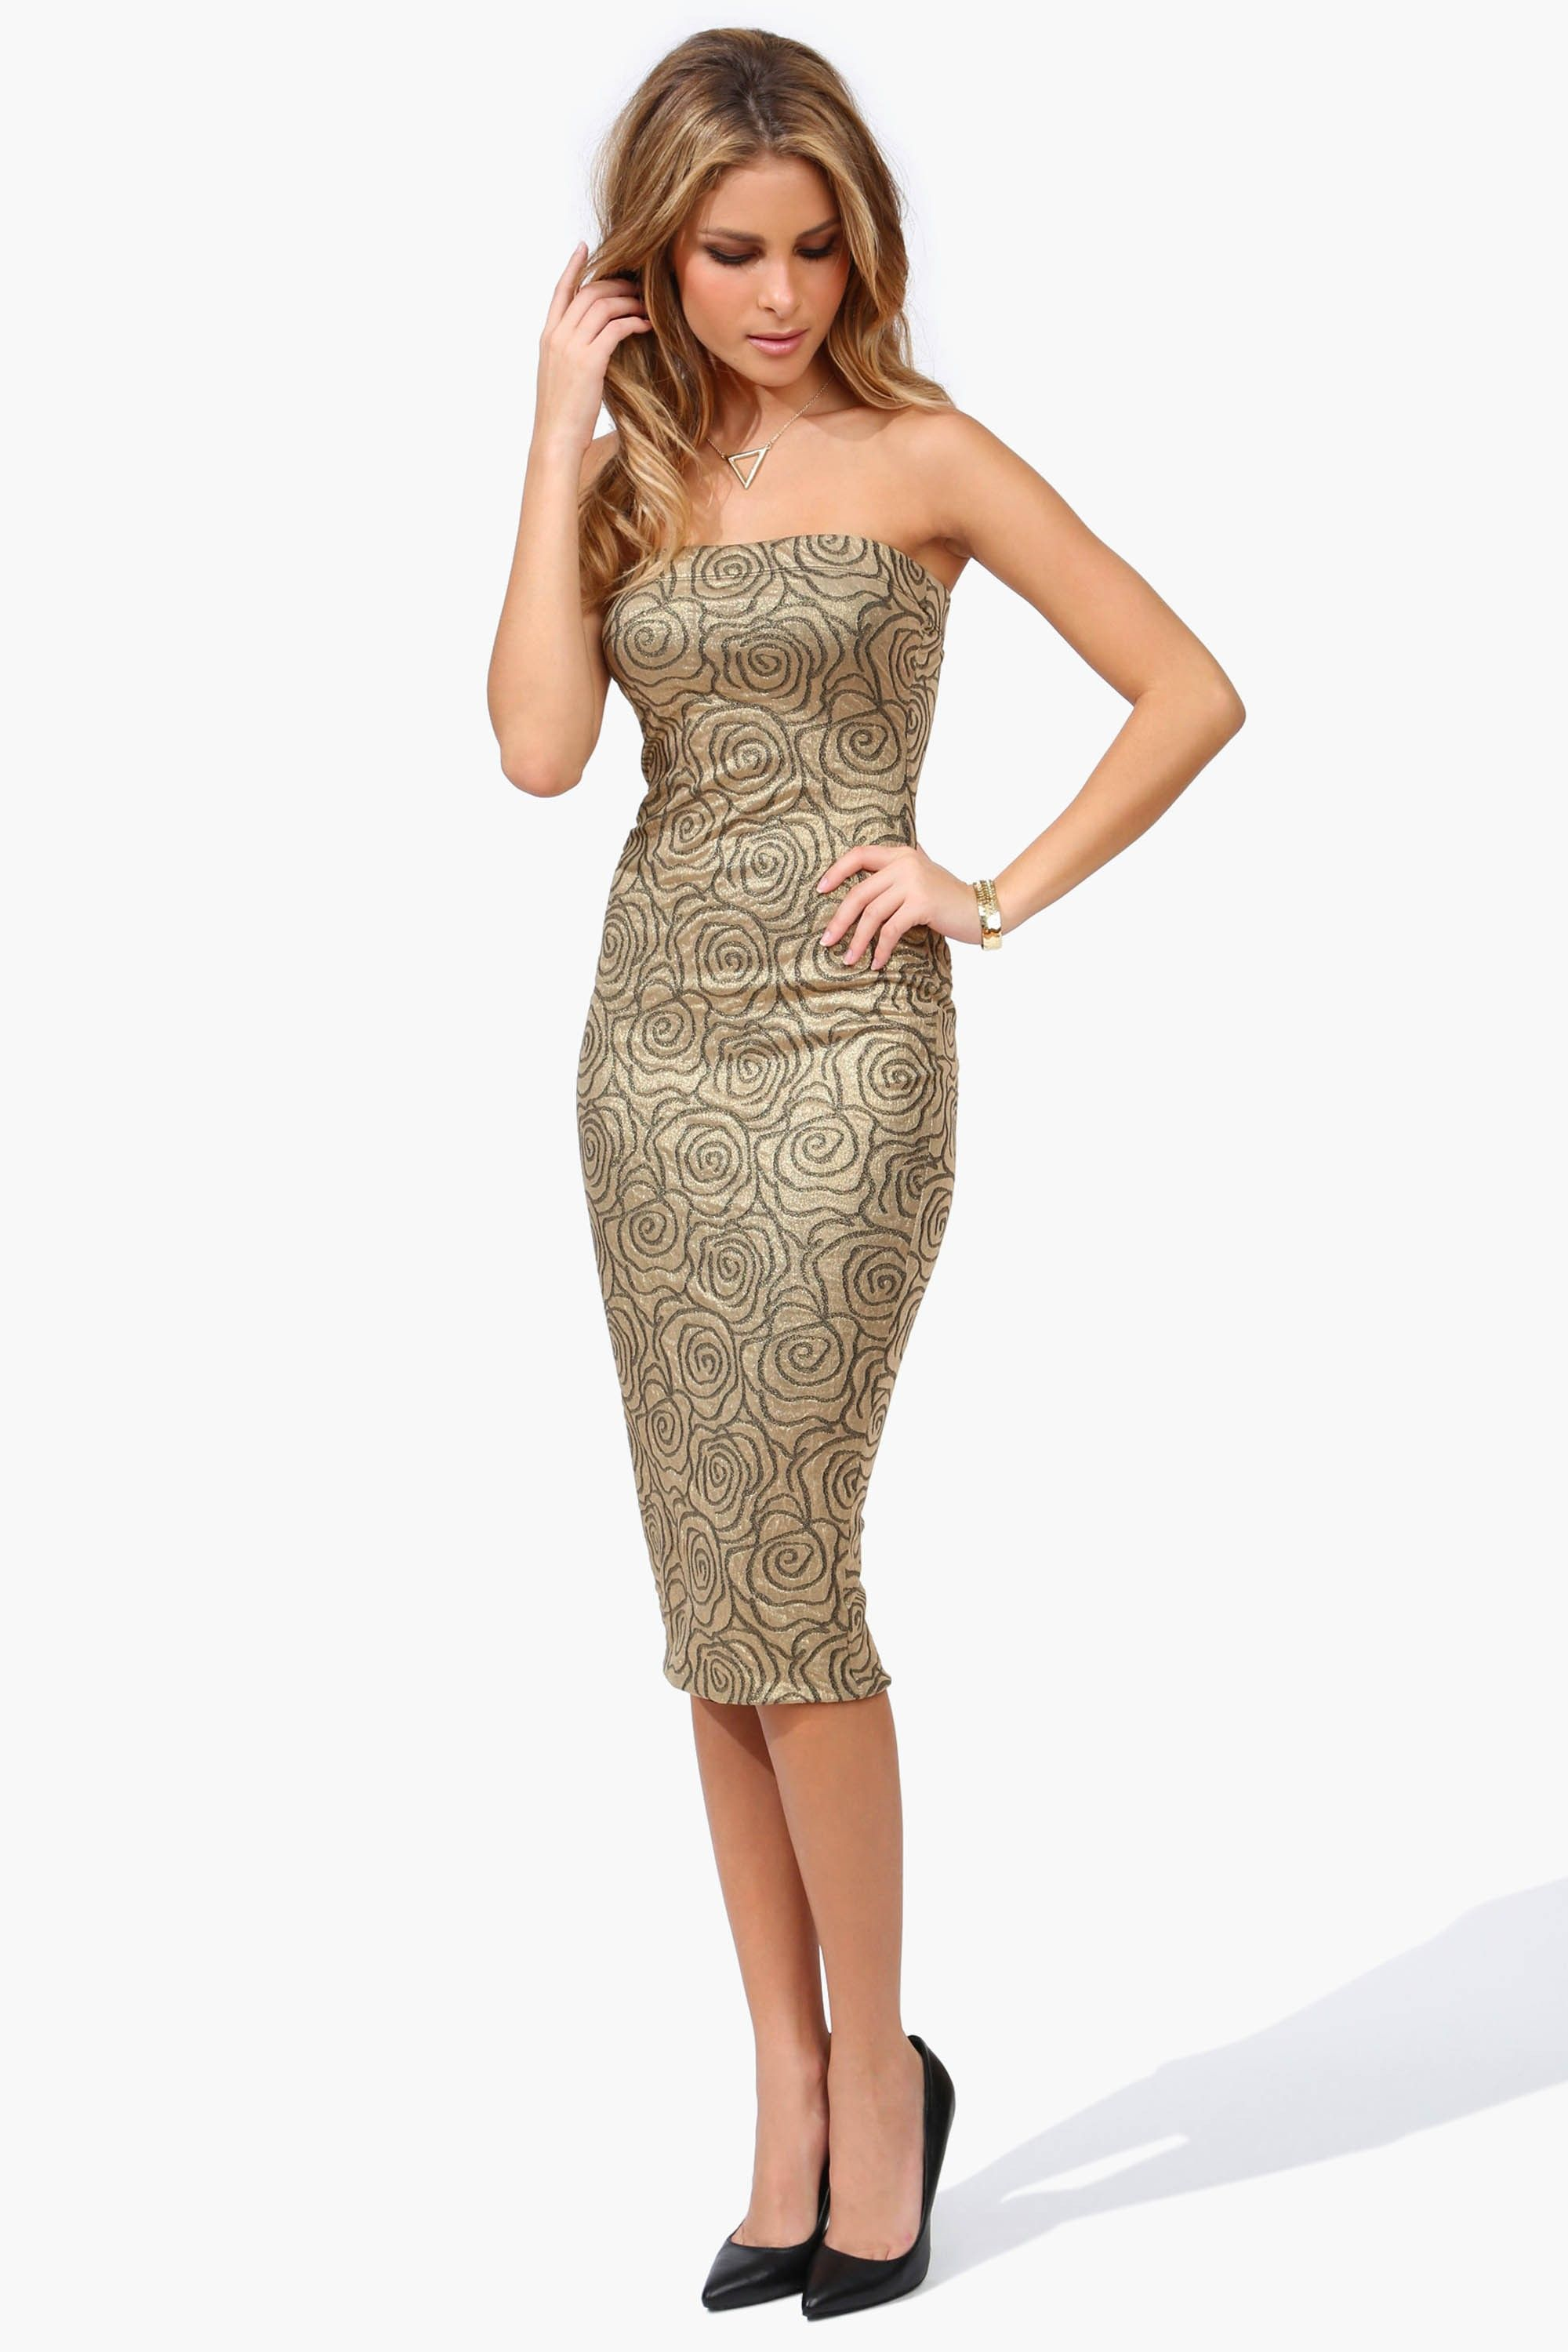 Dressing Point P Disco Night Pencil Dress In Gold A Sexy And 70 39s Inspired